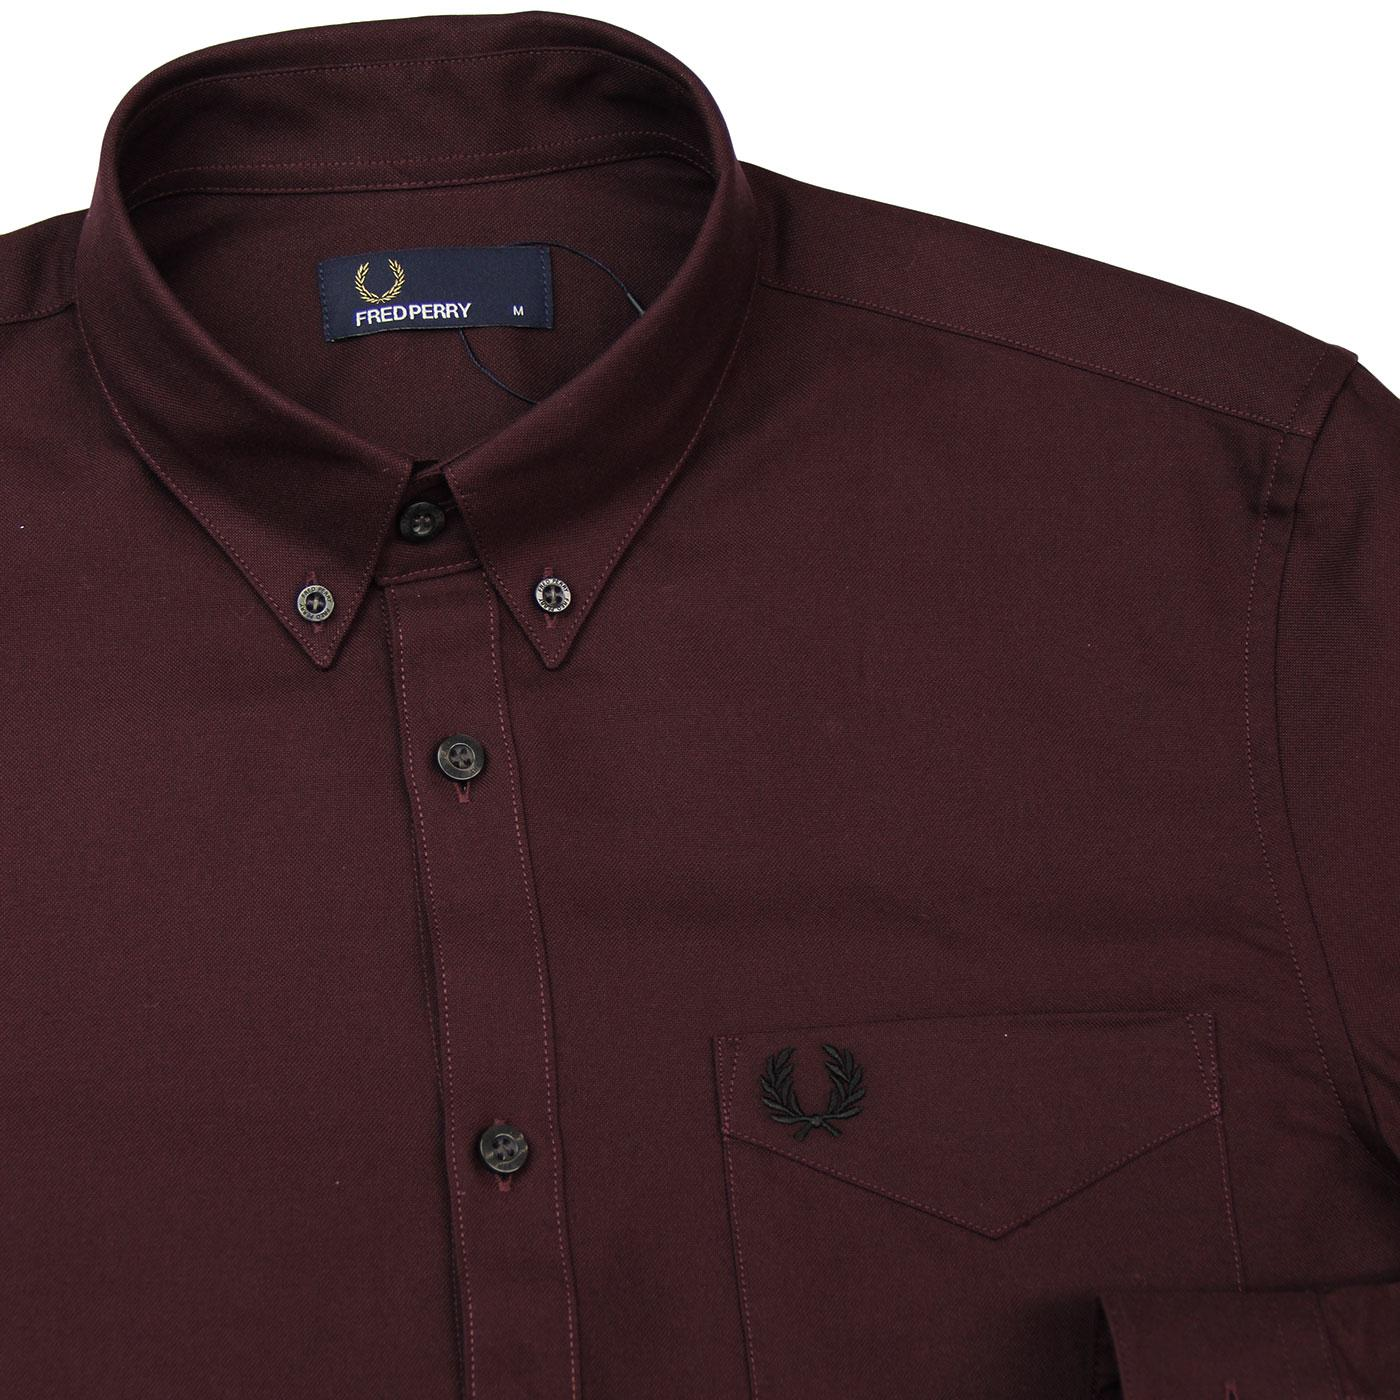 853a47e996ab93 FRED PERRY Classic Button Down Oxford Shirt in Mahogany